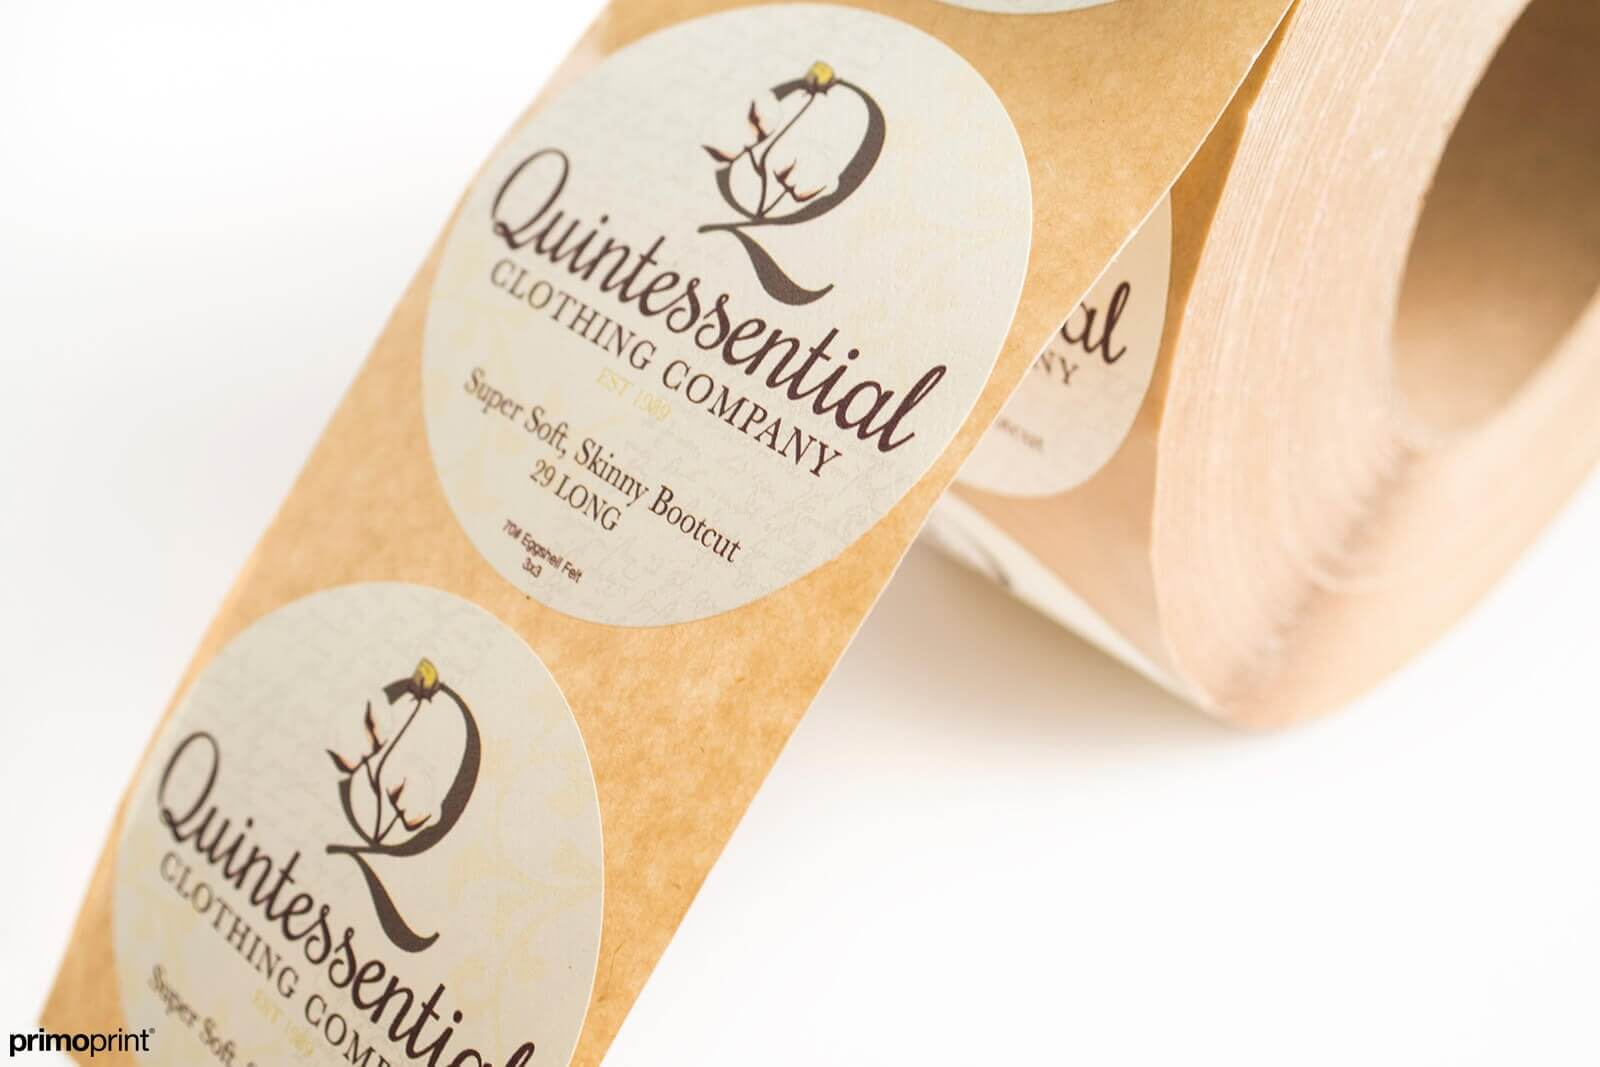 Egg Shell Felt Roll Label Printed by Primoprint